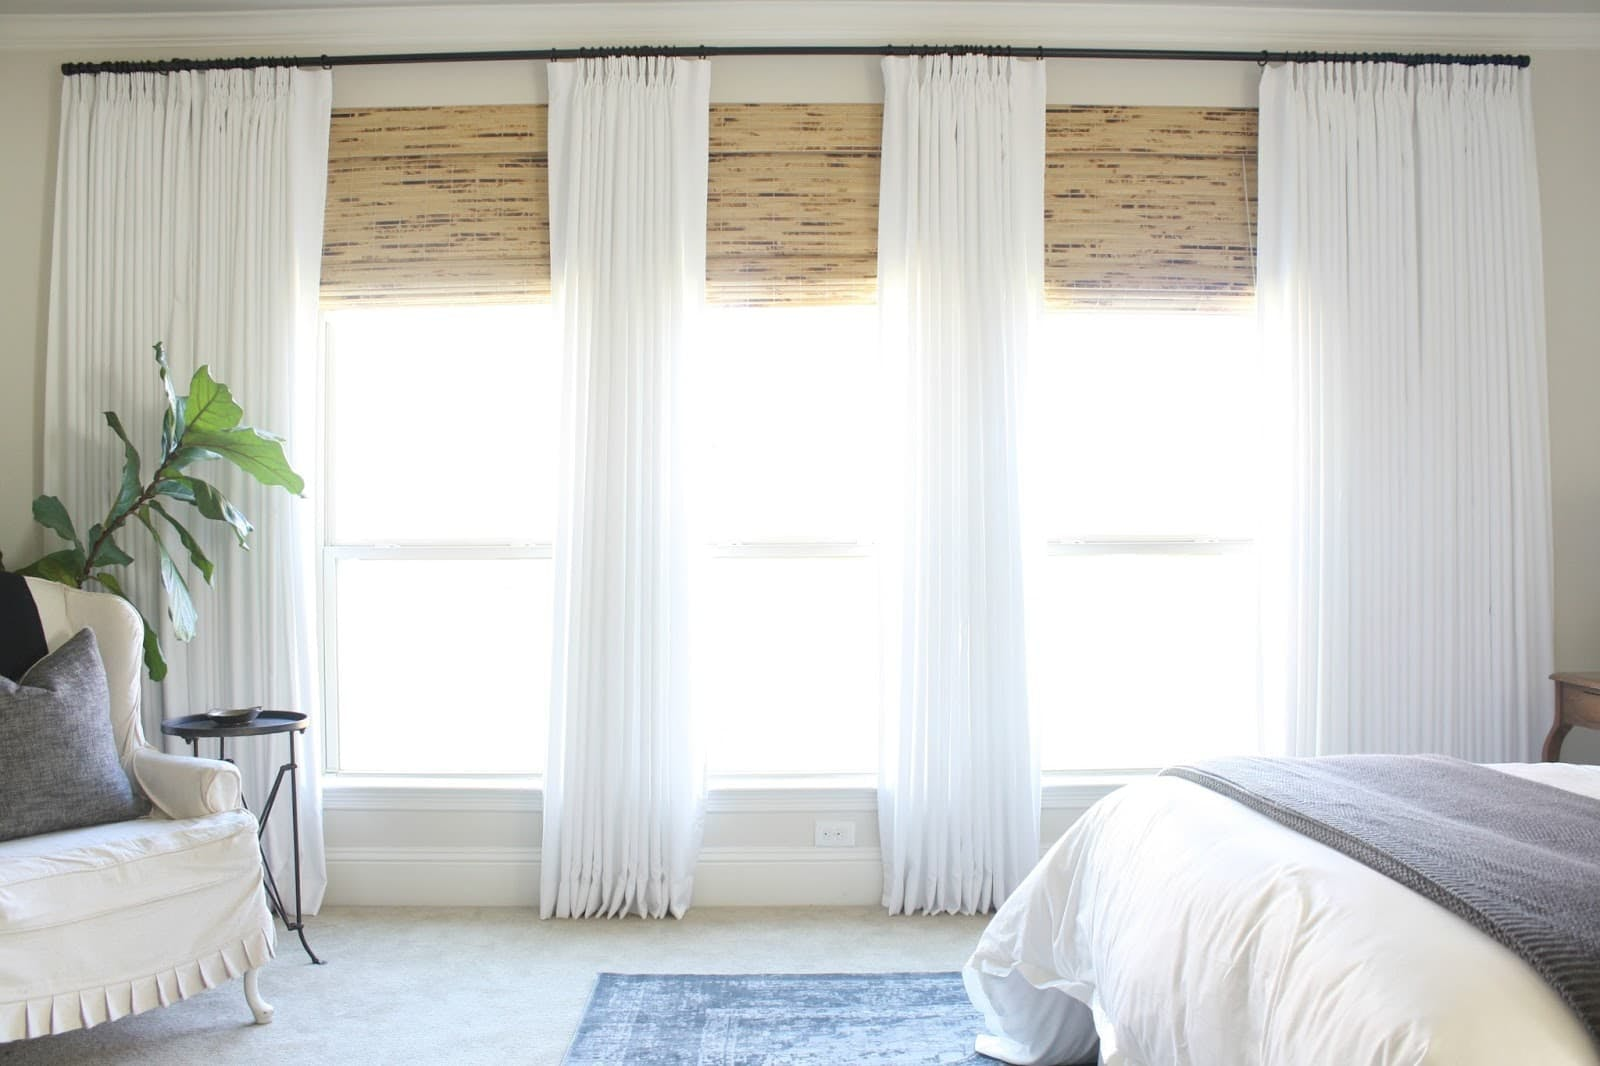 bedroom with bright natural light and bamboo blinds